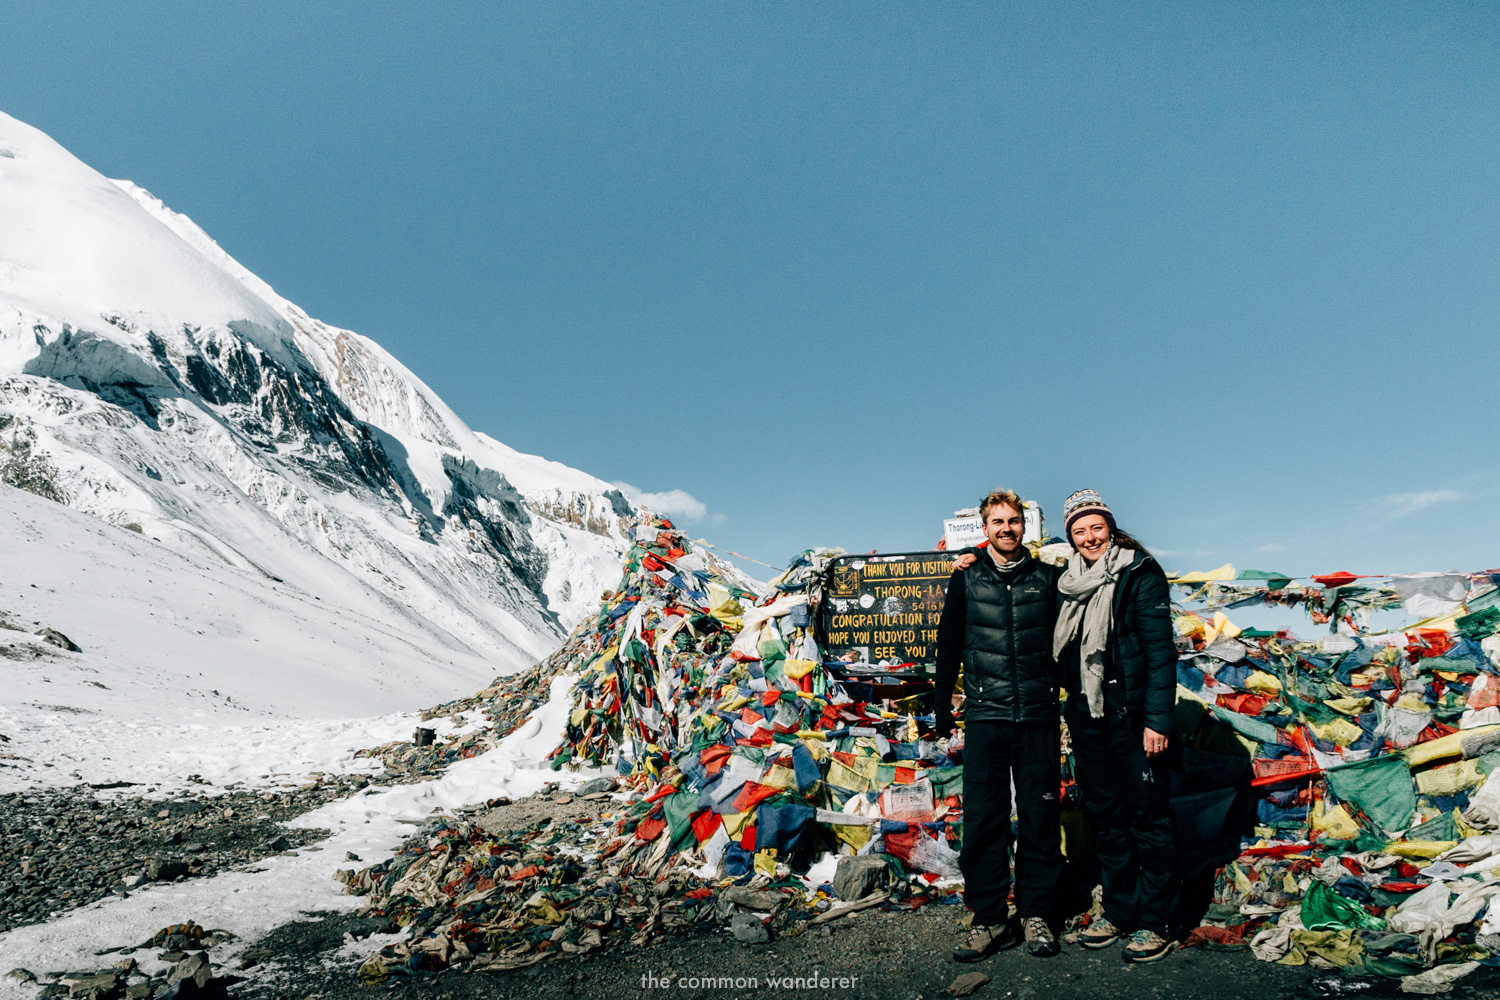 A couple on Thorong La pass after successfully completing the Annapurna Circuit trek, Nepal